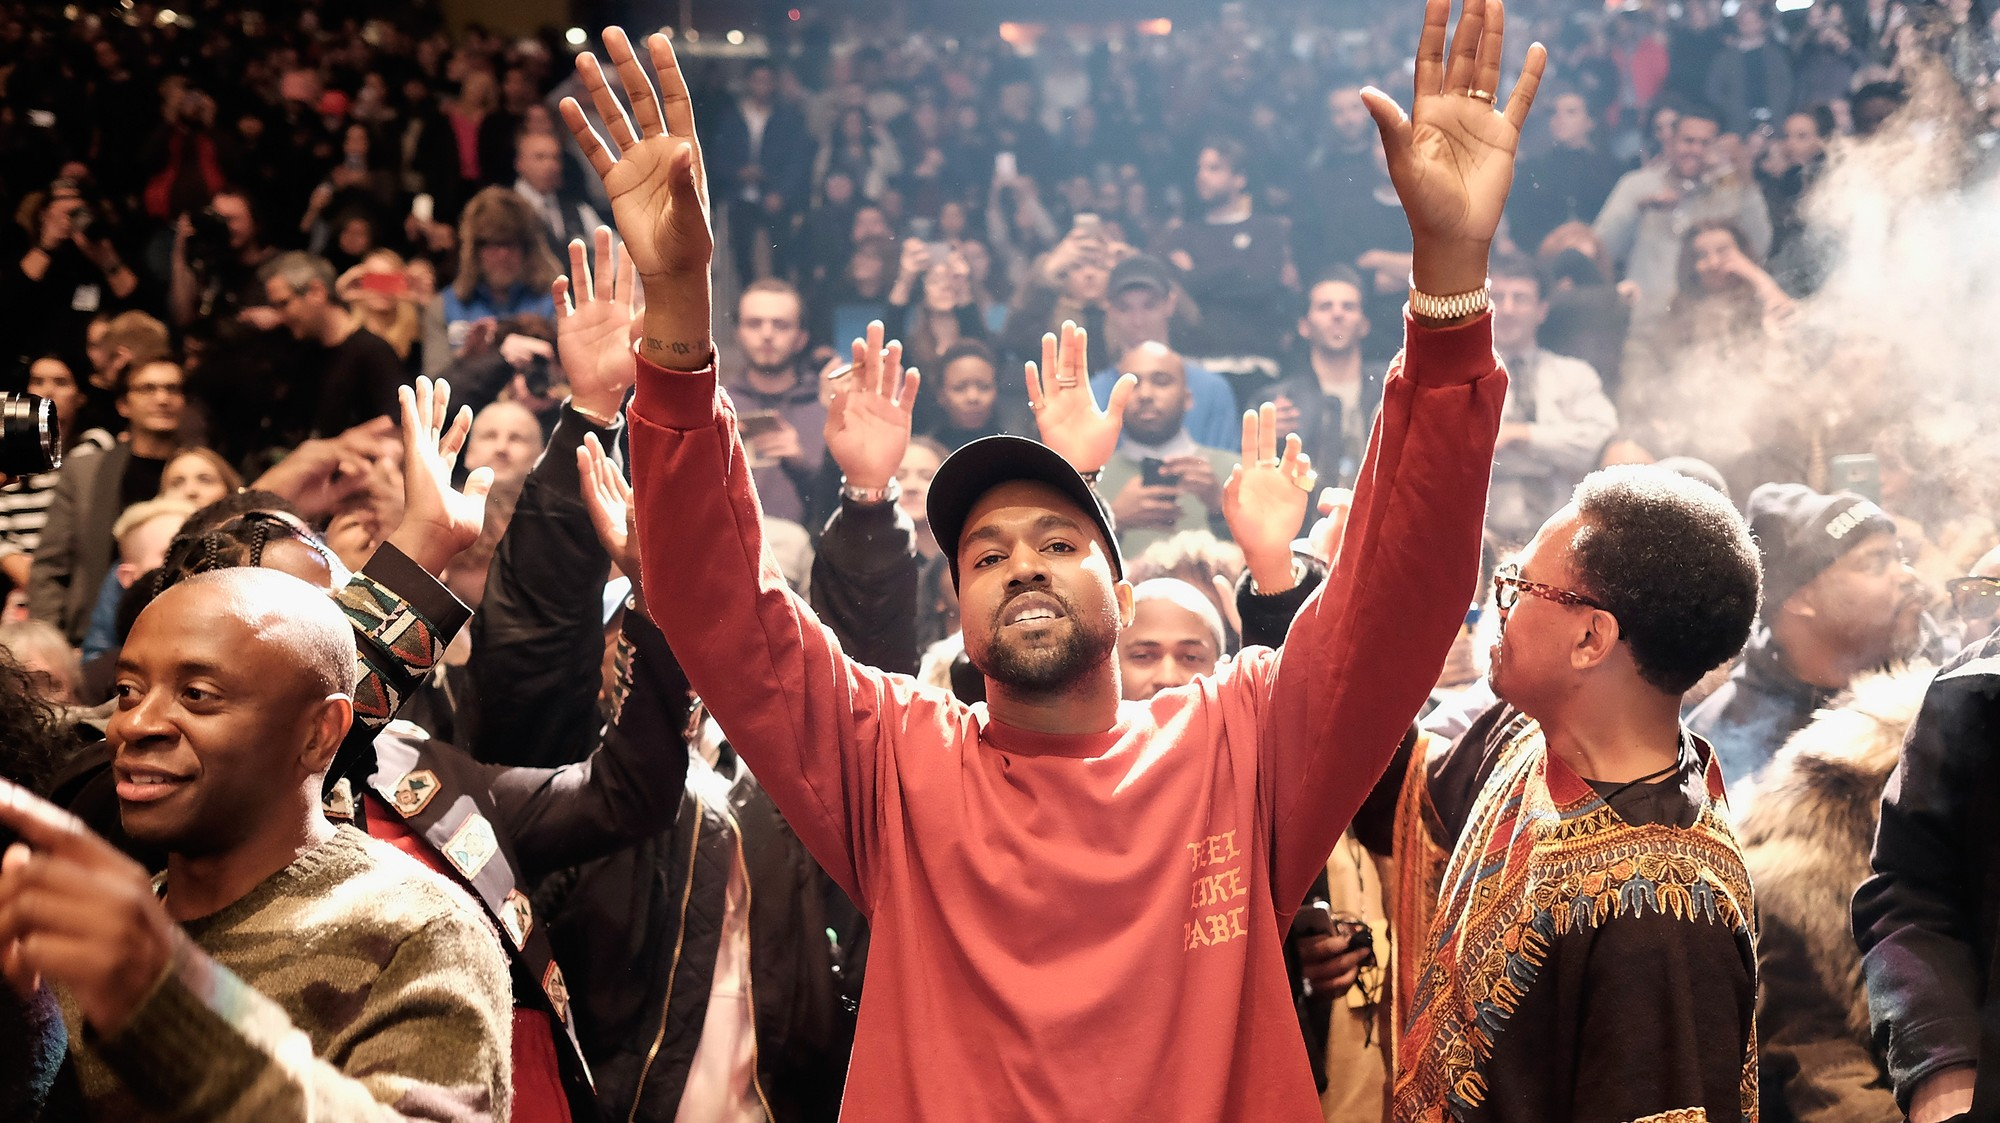 We Asked Religious Experts About Kanye West's 'Jesus Is King